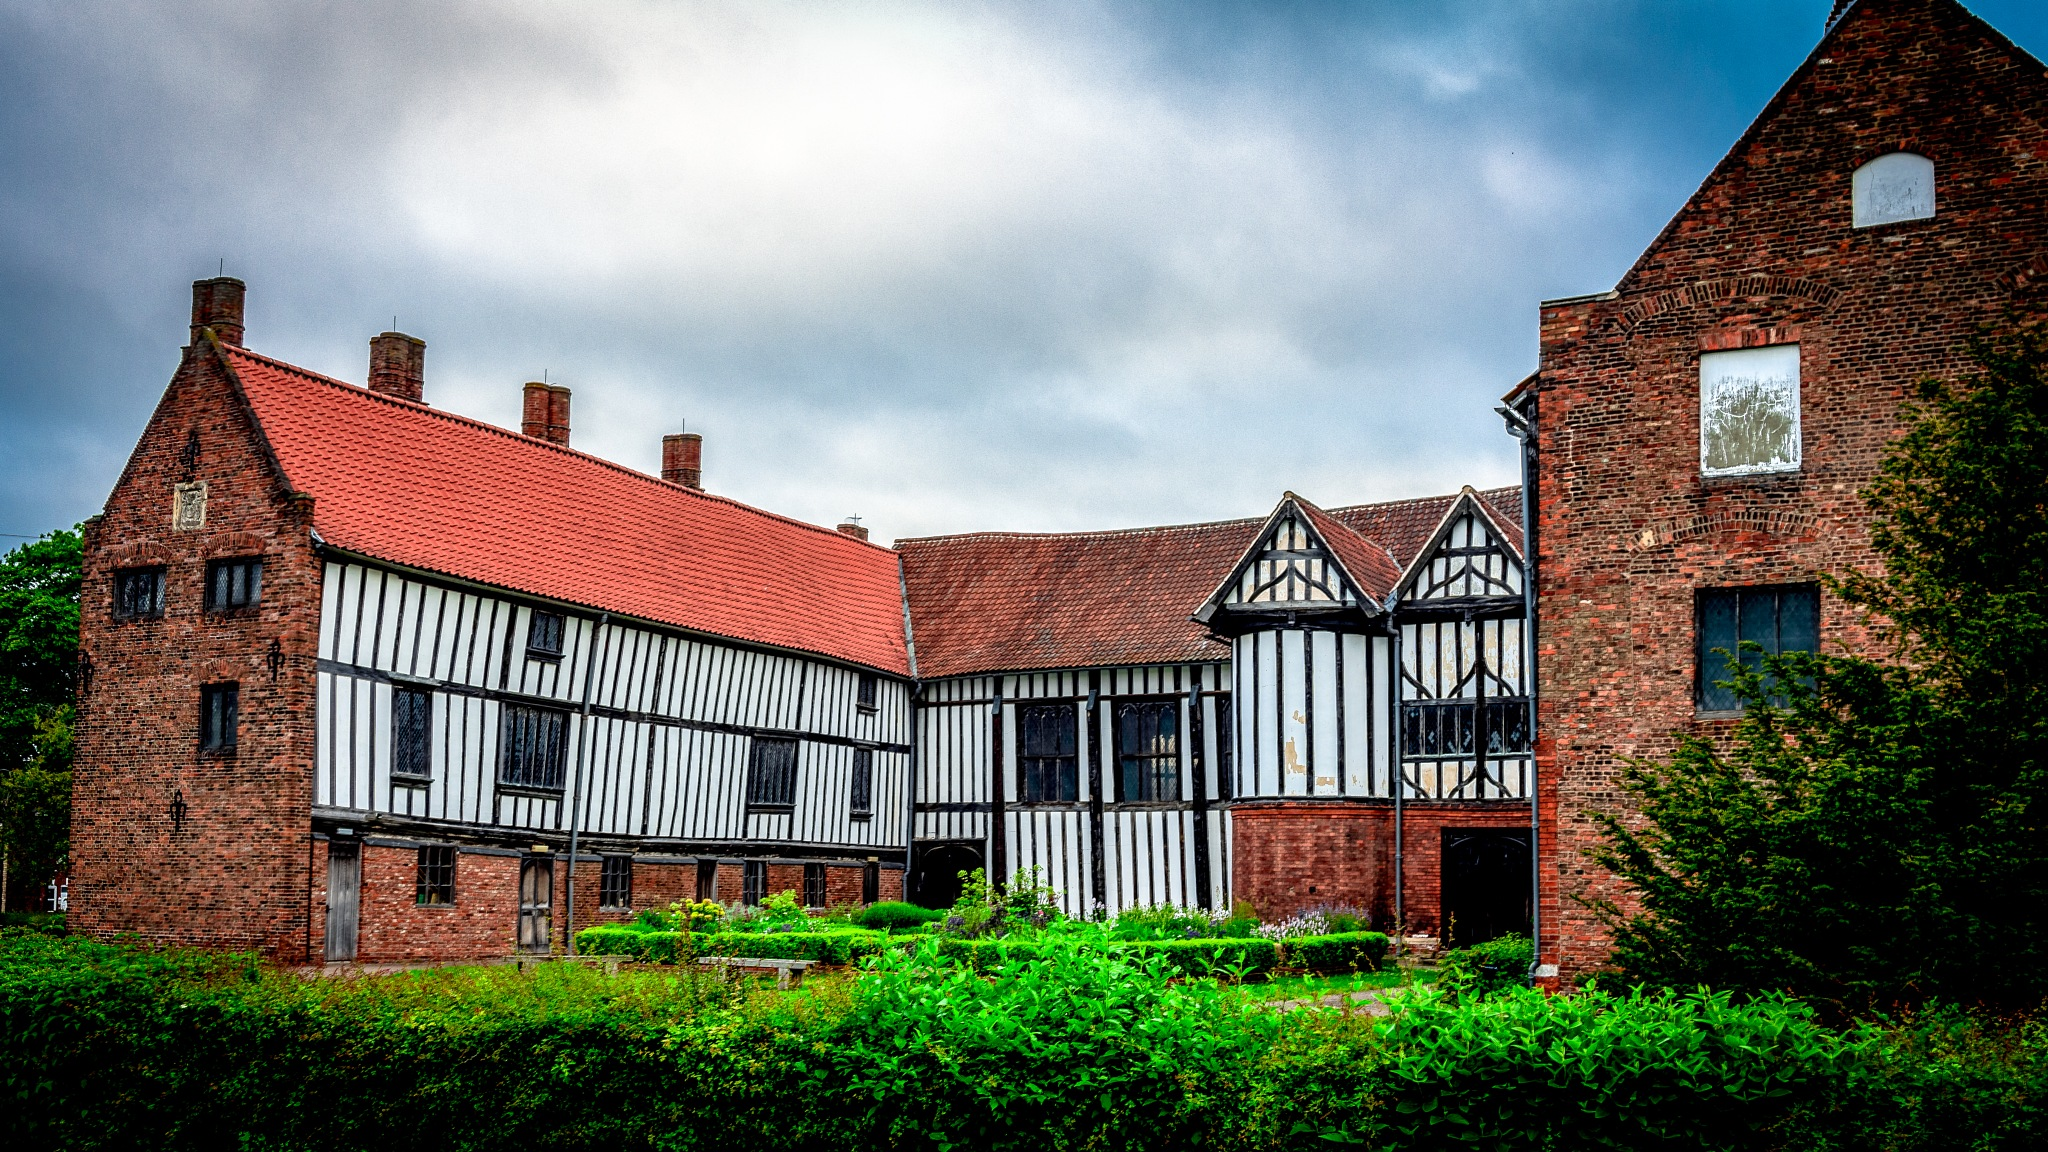 Gainsborough Old Hall by kevin.wood.359126